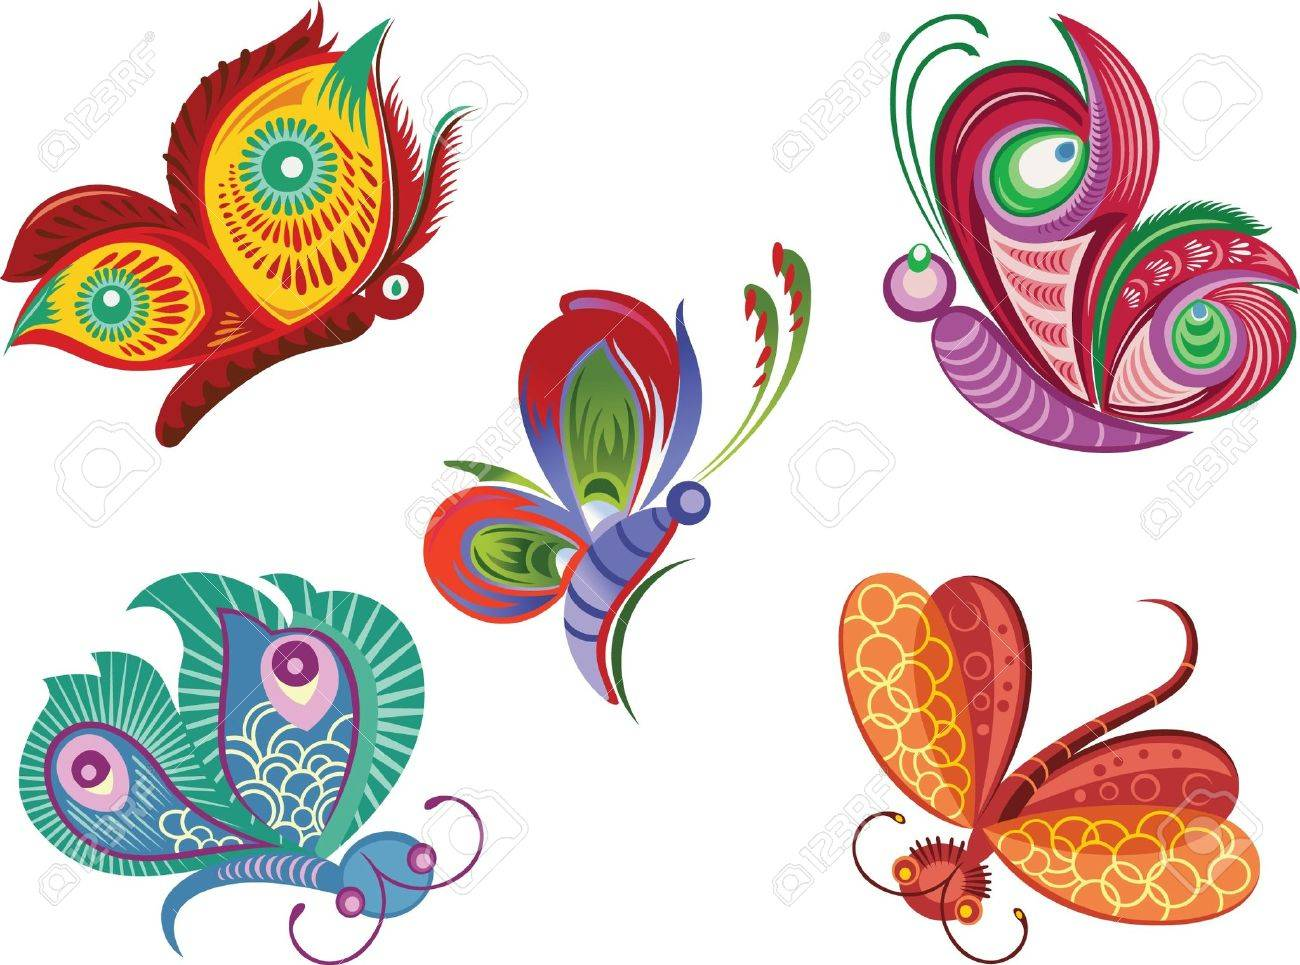 Vector color illustration of decorative butterfly and dragonfly Stock Vector - 10144881